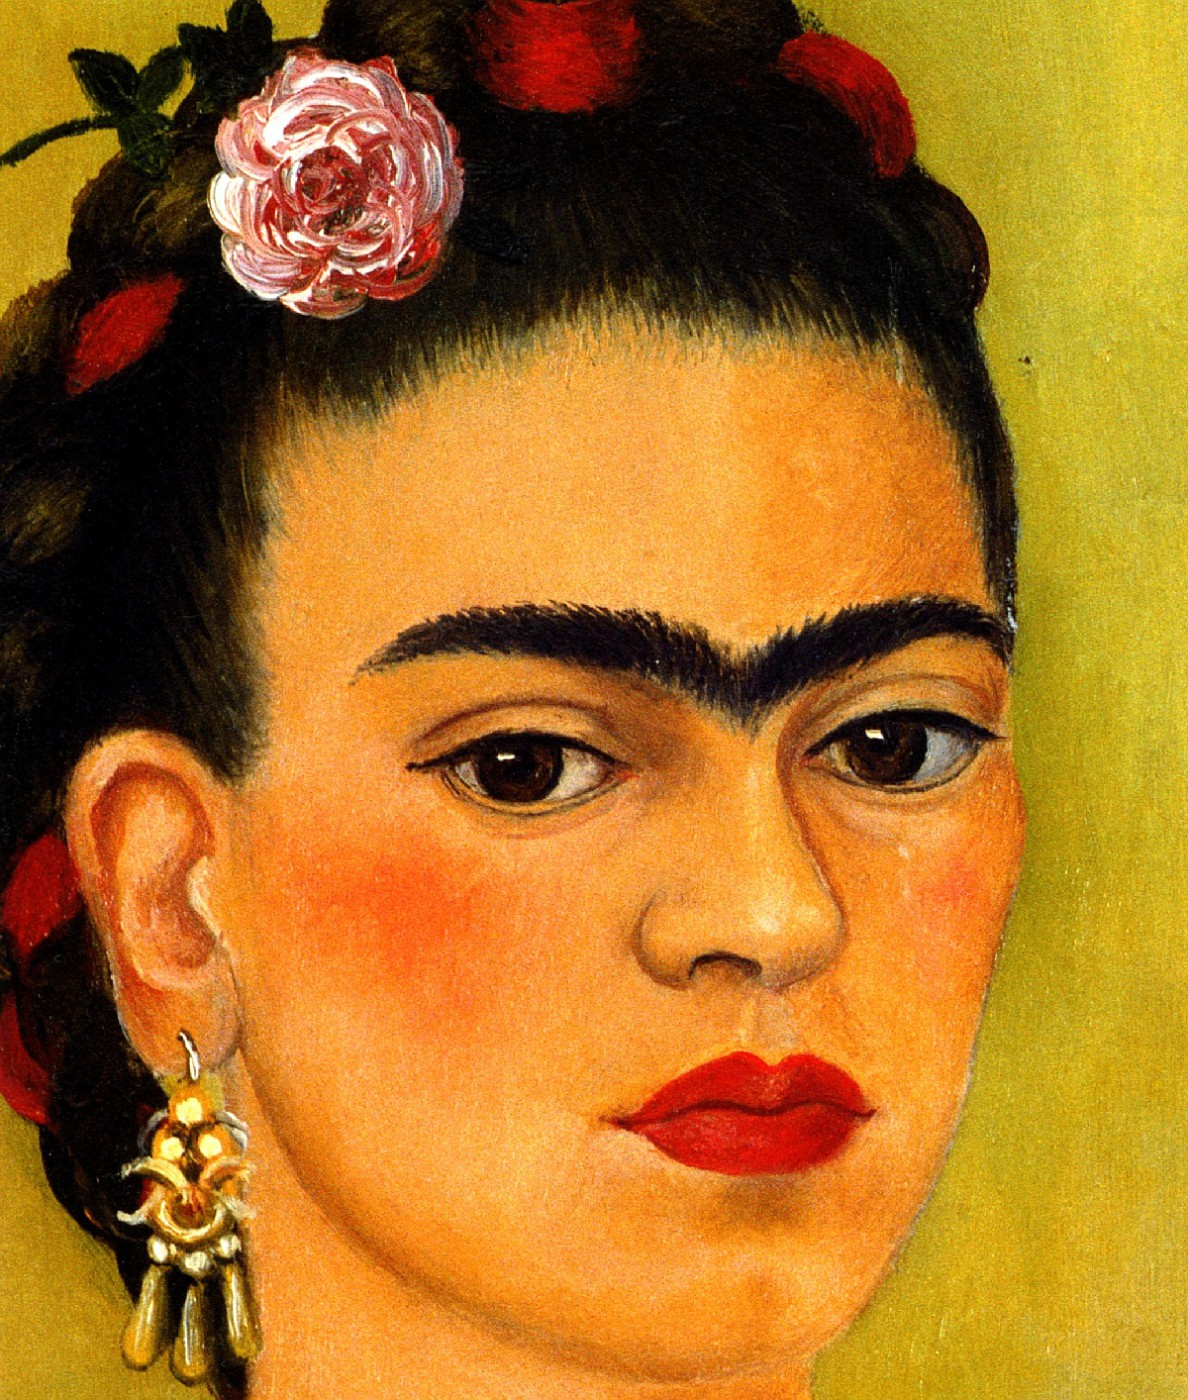 photo clio team 1937 frida kahlo autoportrait d di l on troski ou entre les rideaux. Black Bedroom Furniture Sets. Home Design Ideas